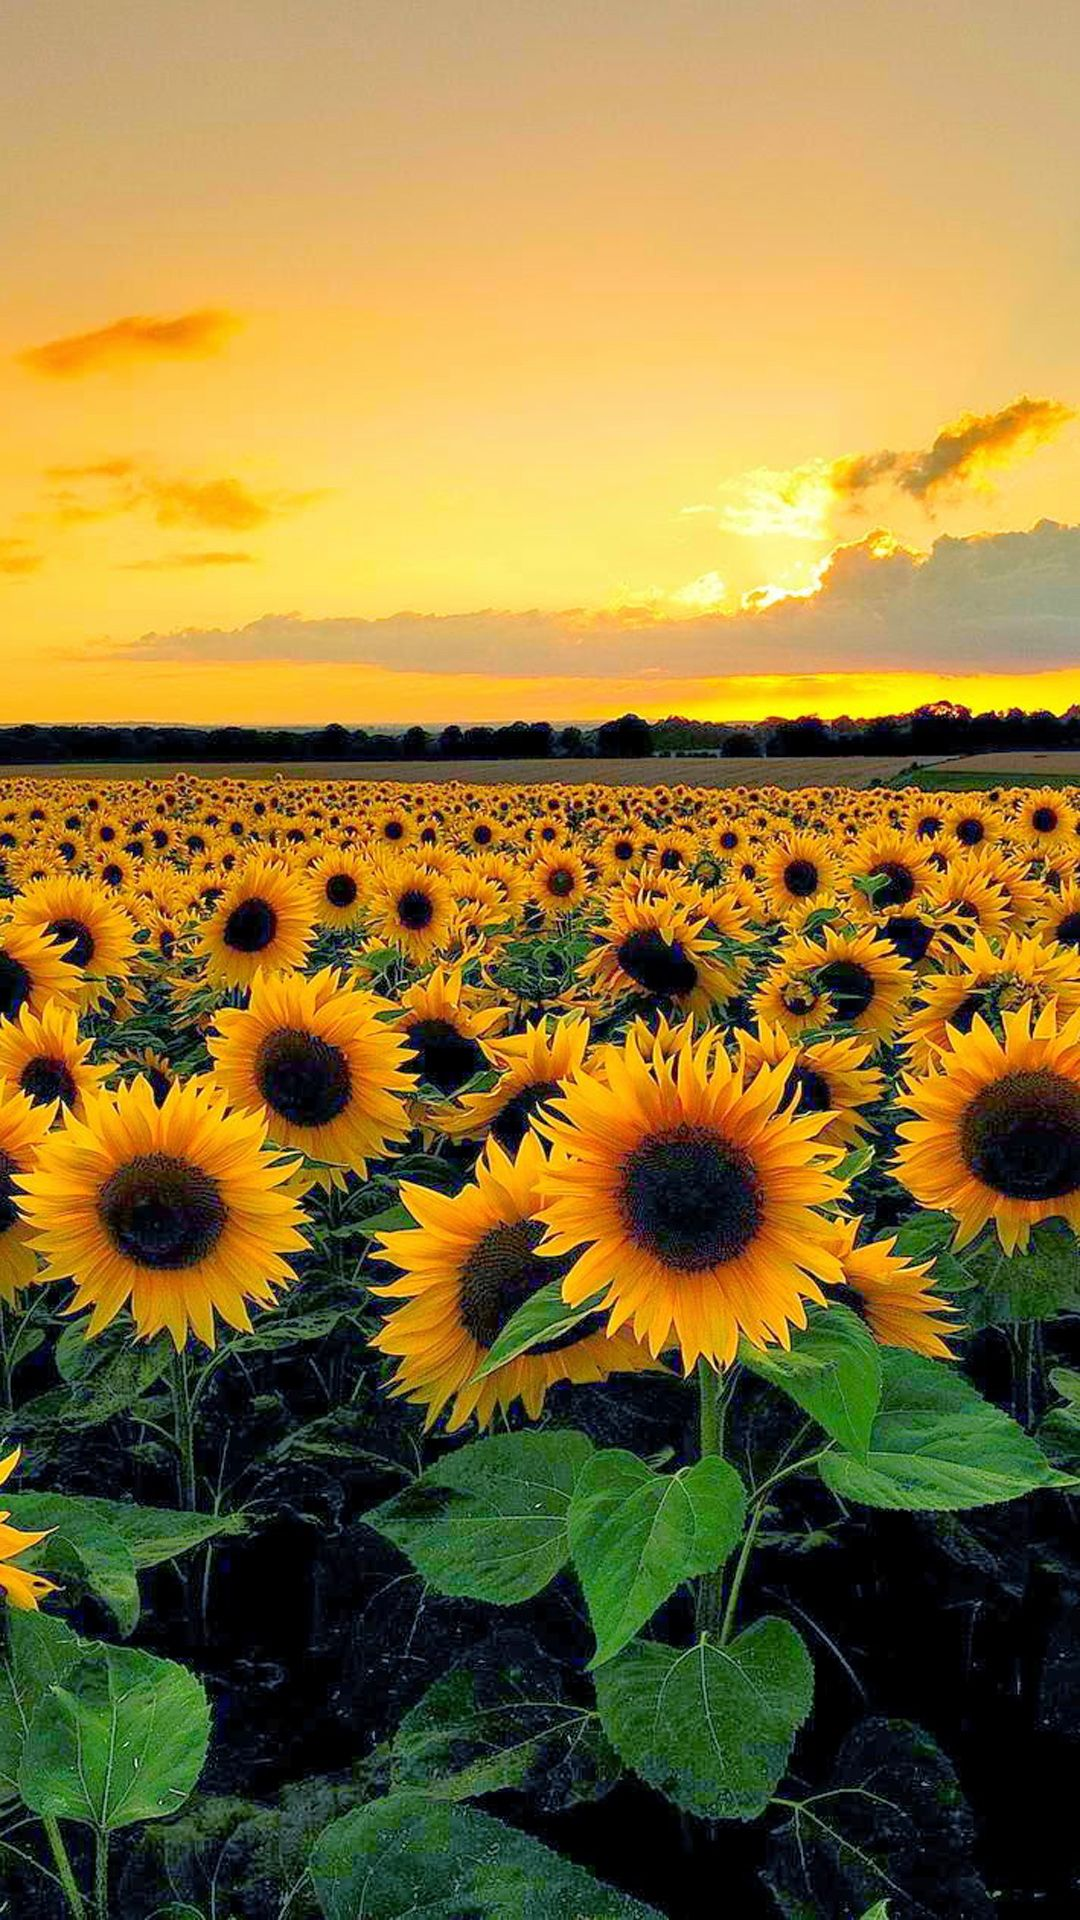 sunset view from sunflower field | craft ideas in 2018 | pinterest